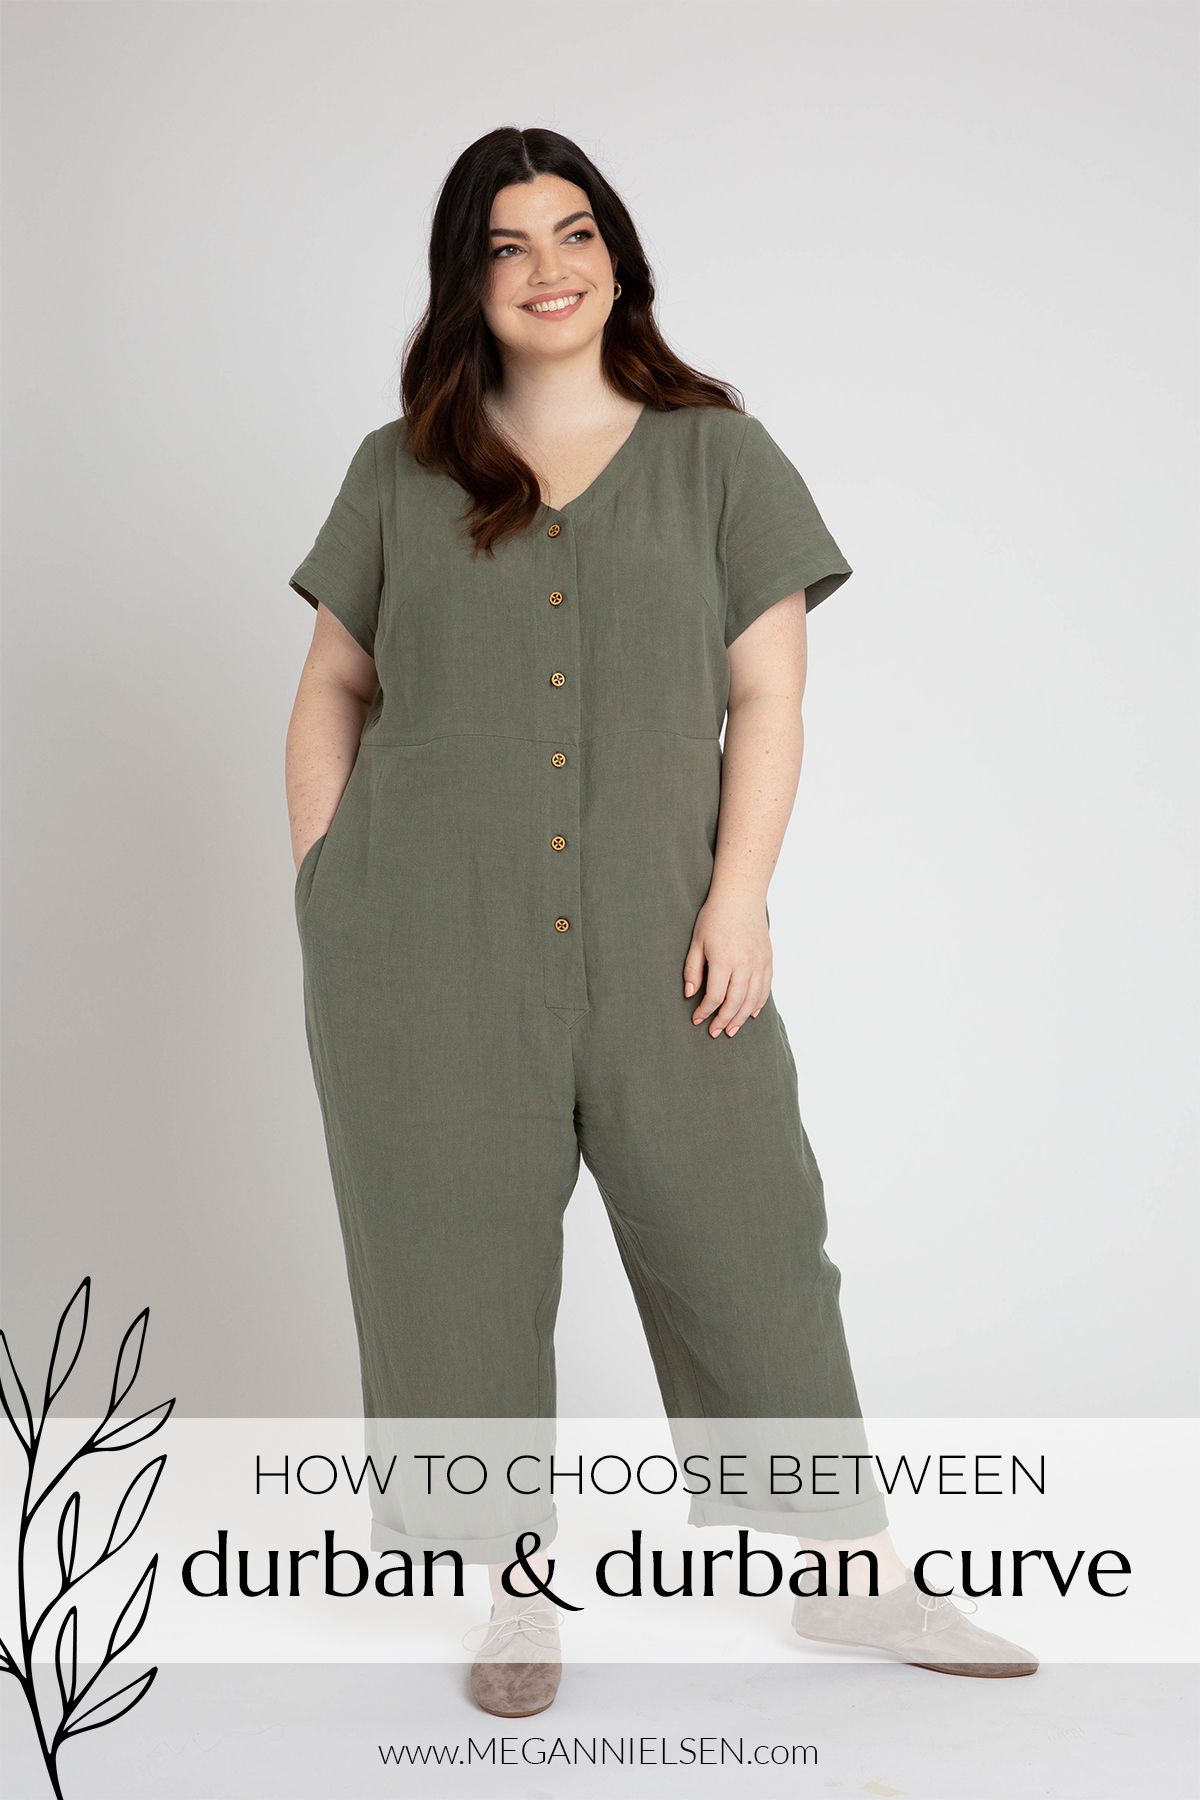 How to Choose Between Durban and Durban Curve sewing patterns | Megan Nielsen Blog